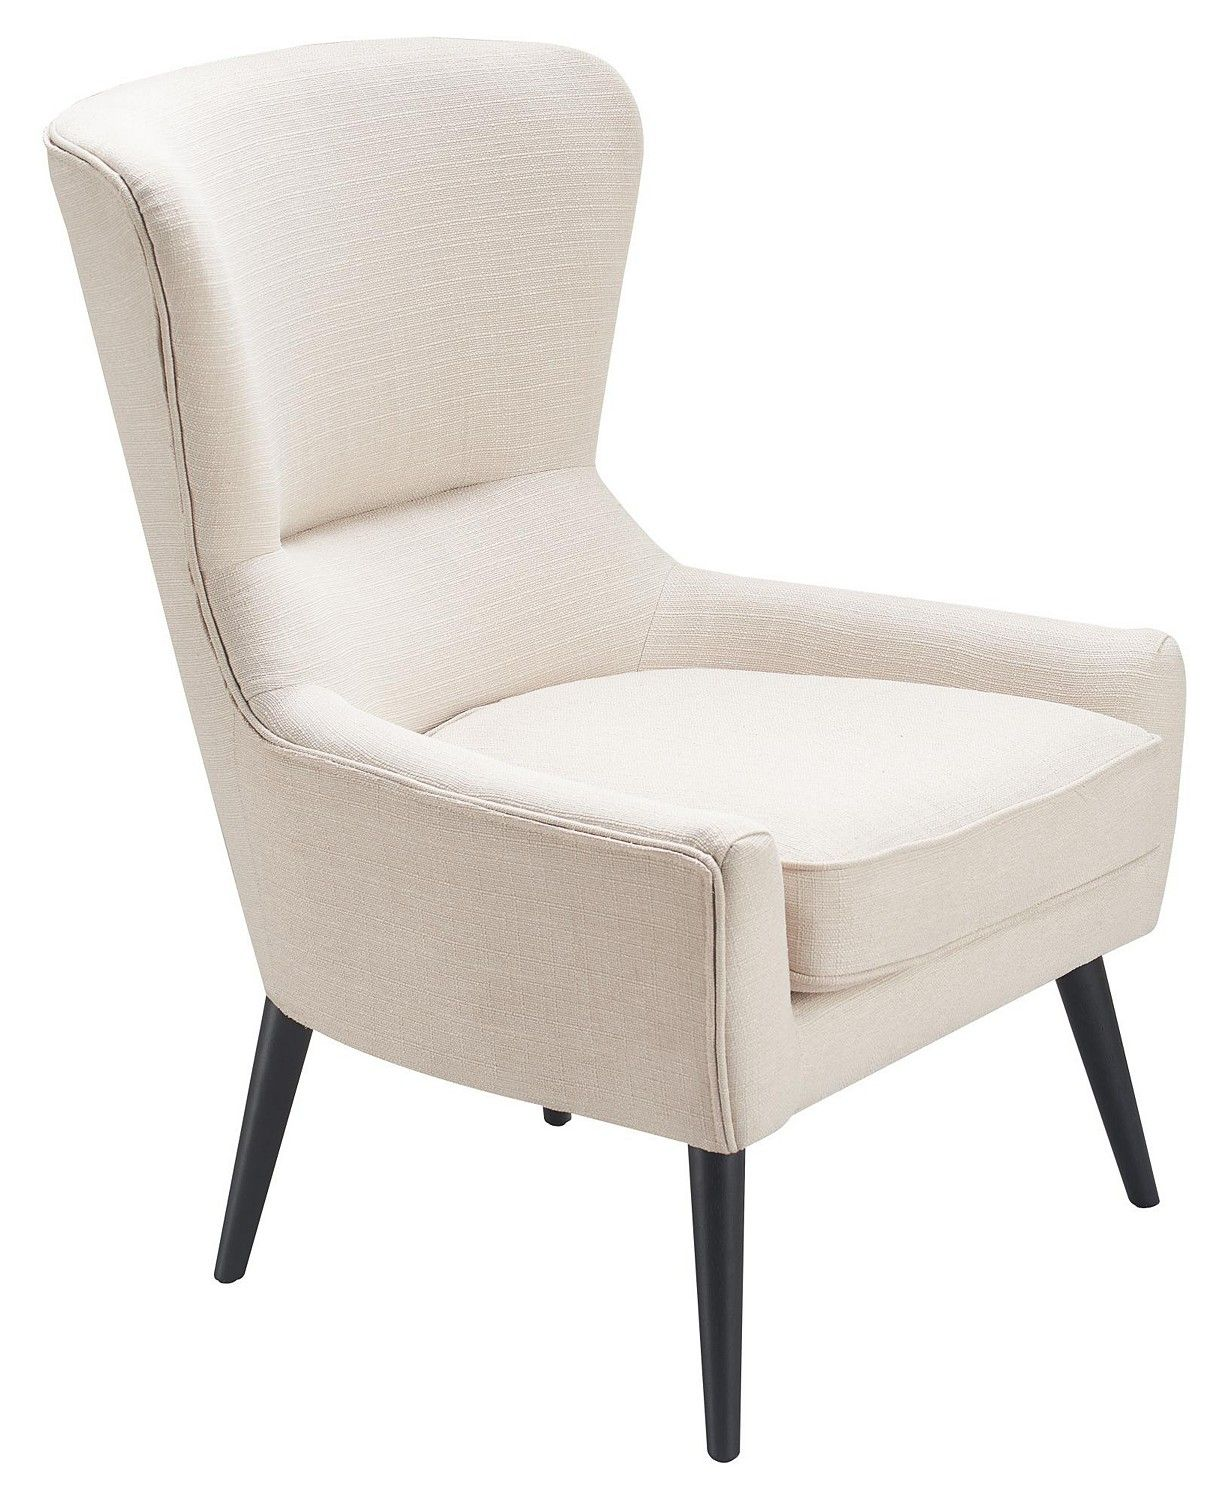 Elle Decor Elle Décor Modern Wingback Chair & Reviews